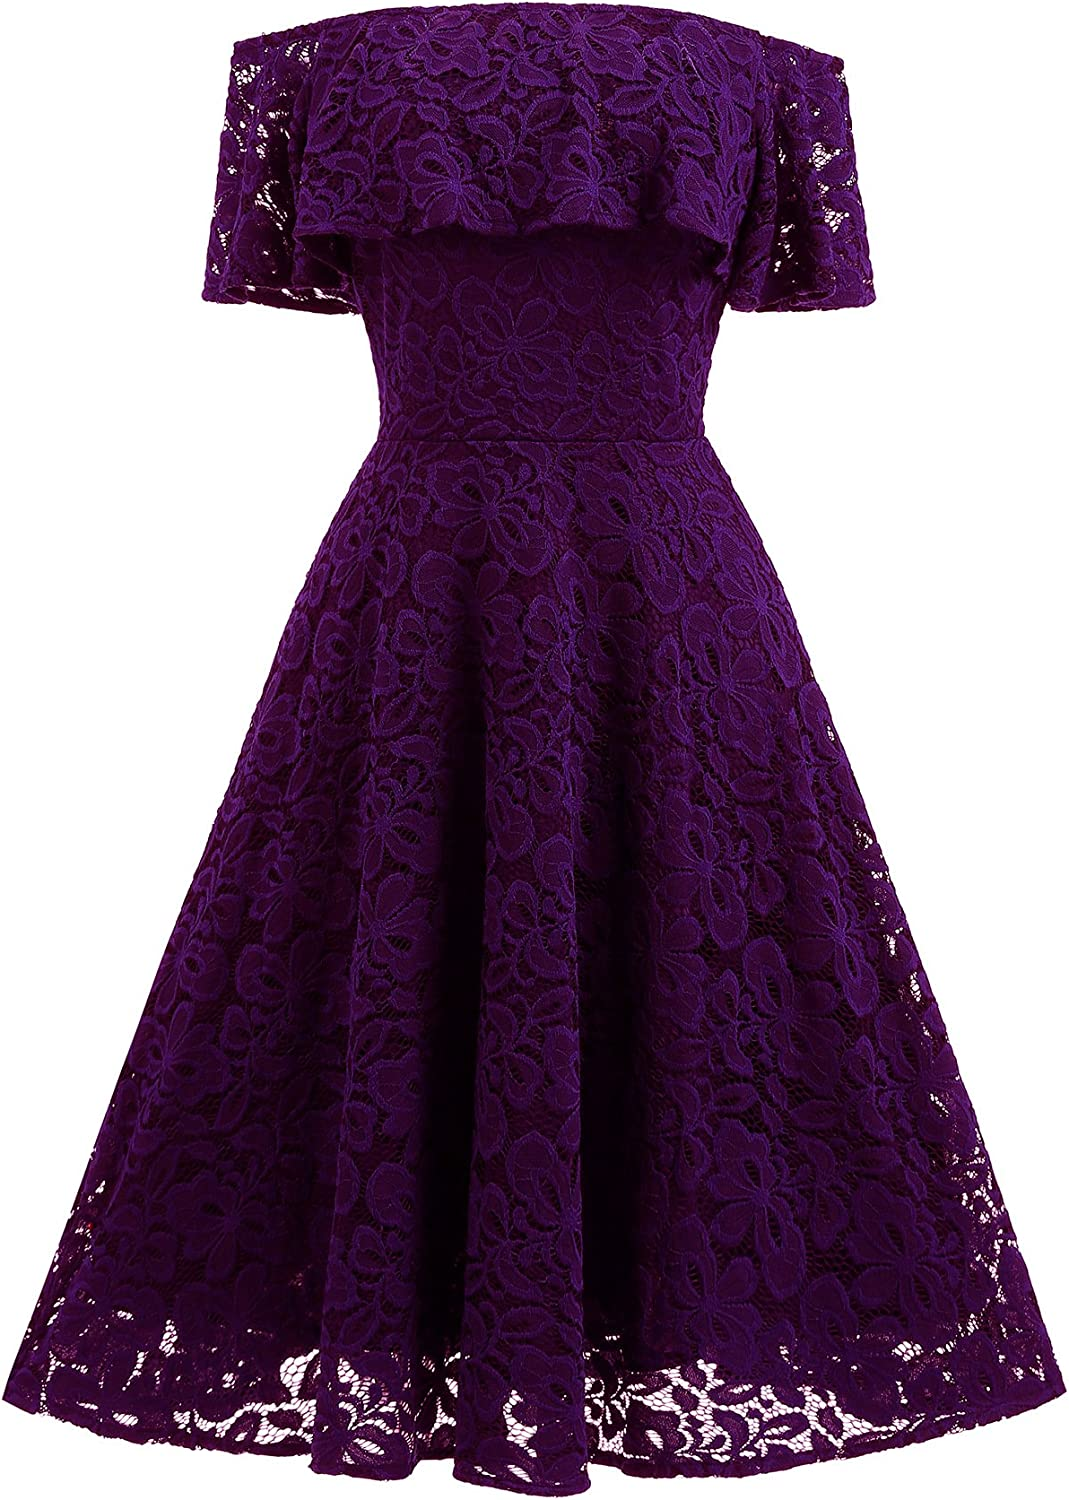 Aibwet Womens Off Shoulder Ruffle Sleeves Cocktail Party Wedding Formal Floral Lace Swing Dress